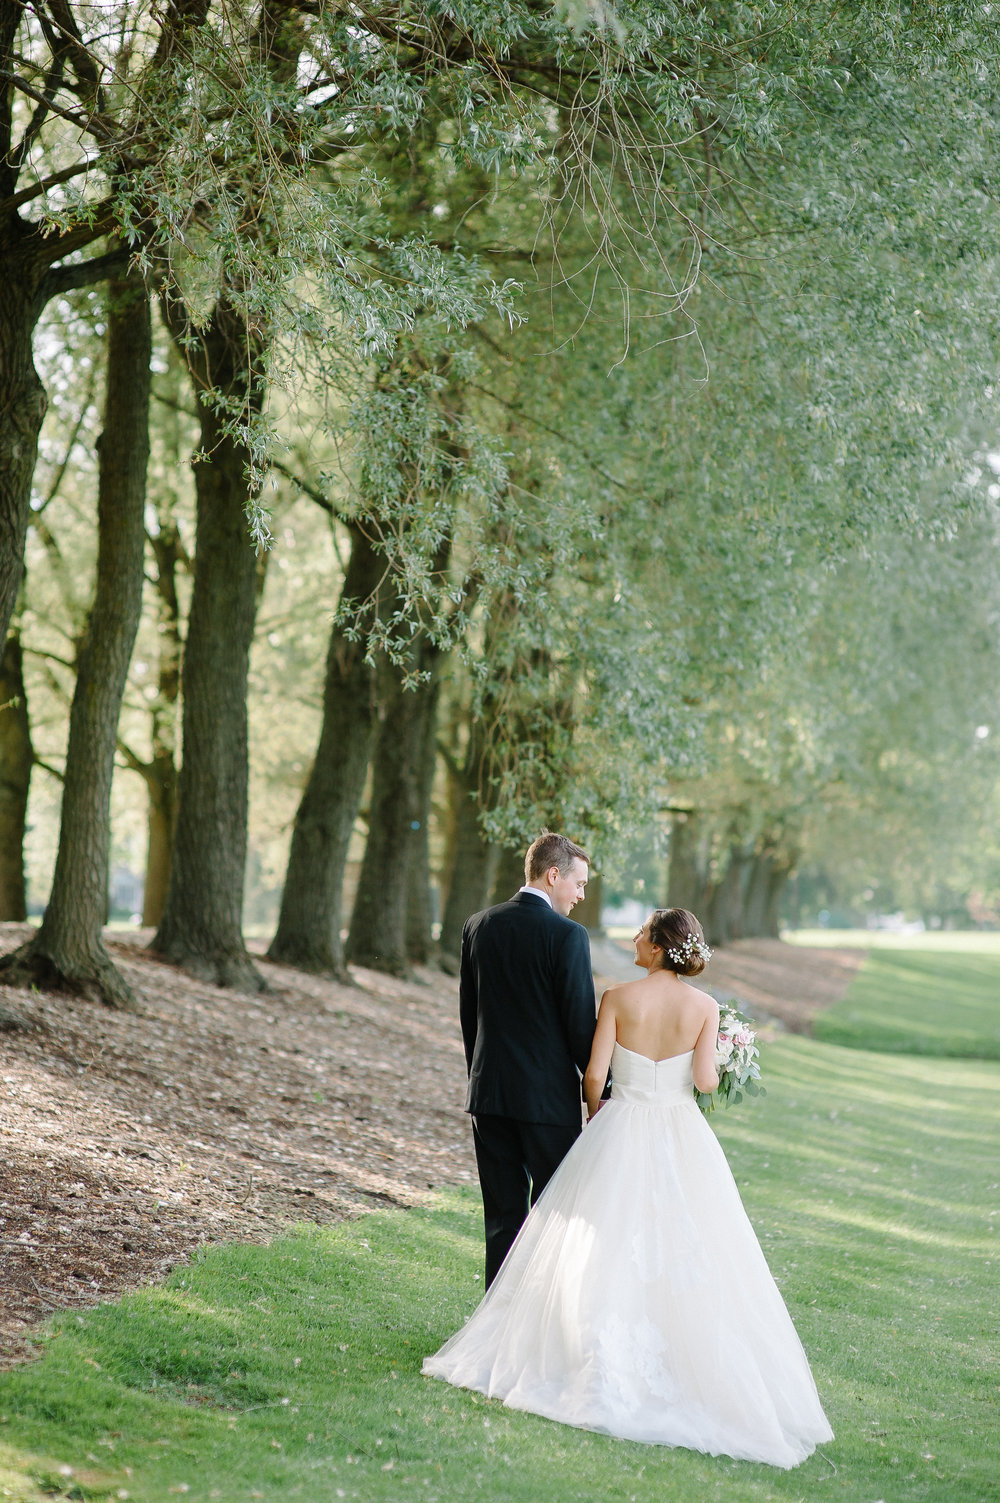 Bride and groom on Willow Path at Colgate University in Hamilton, NY